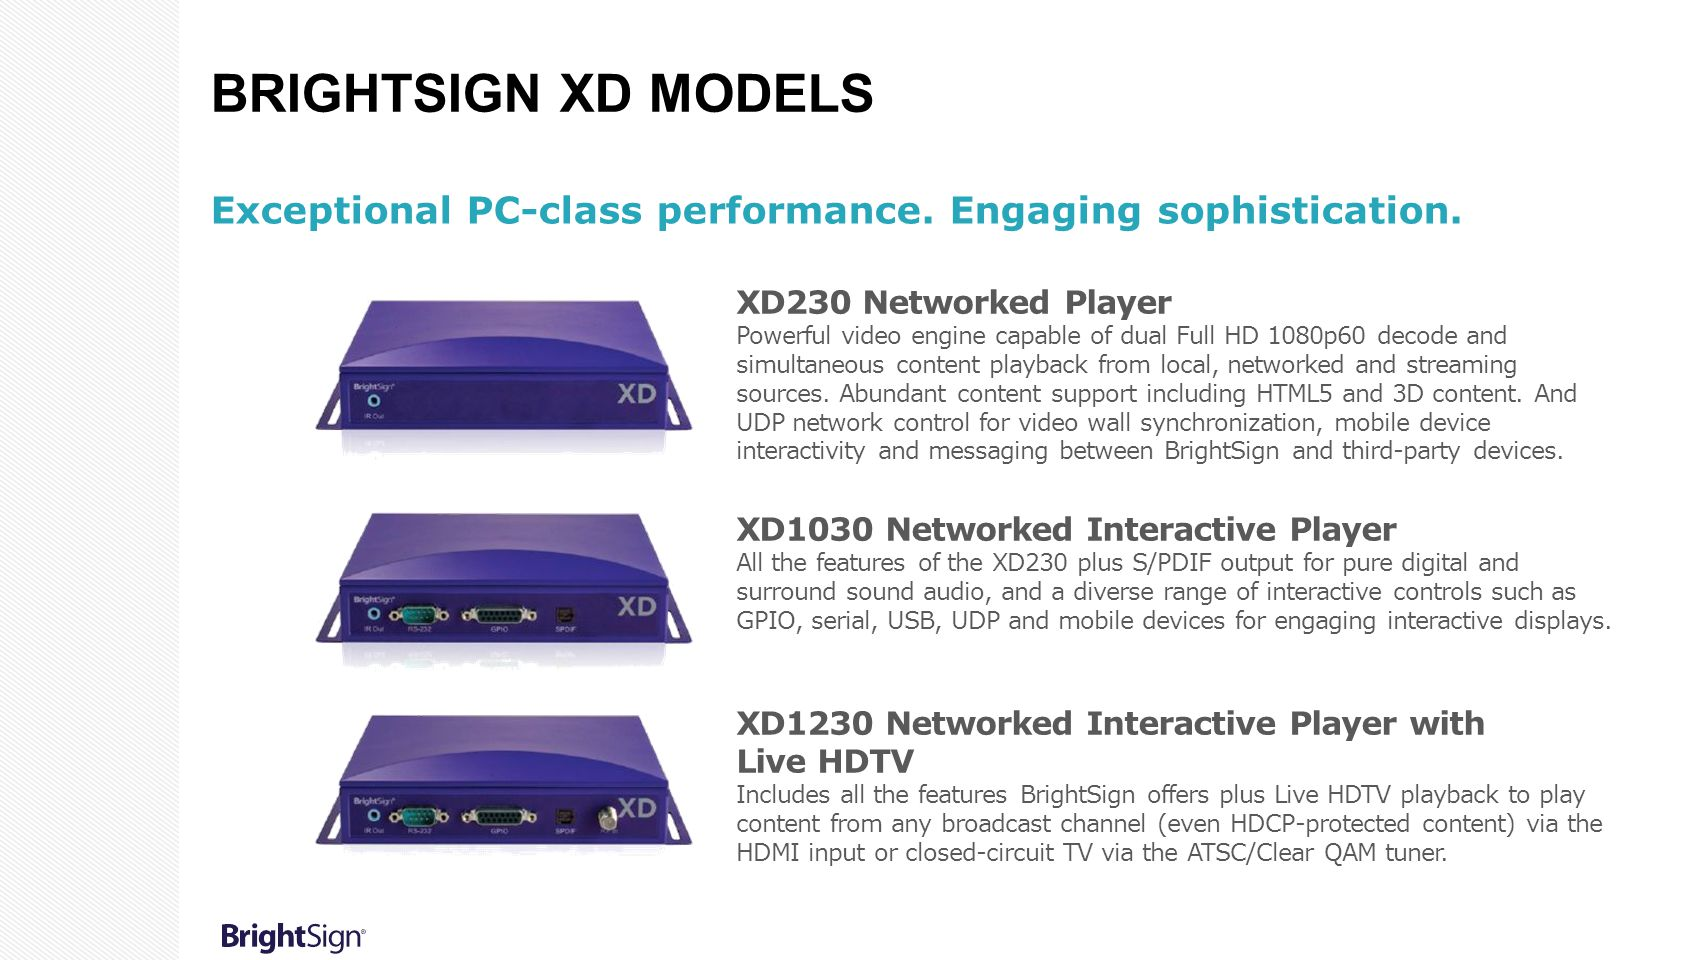 BrightSign XD Models Exceptional PC-class performance. Engaging sophistication.